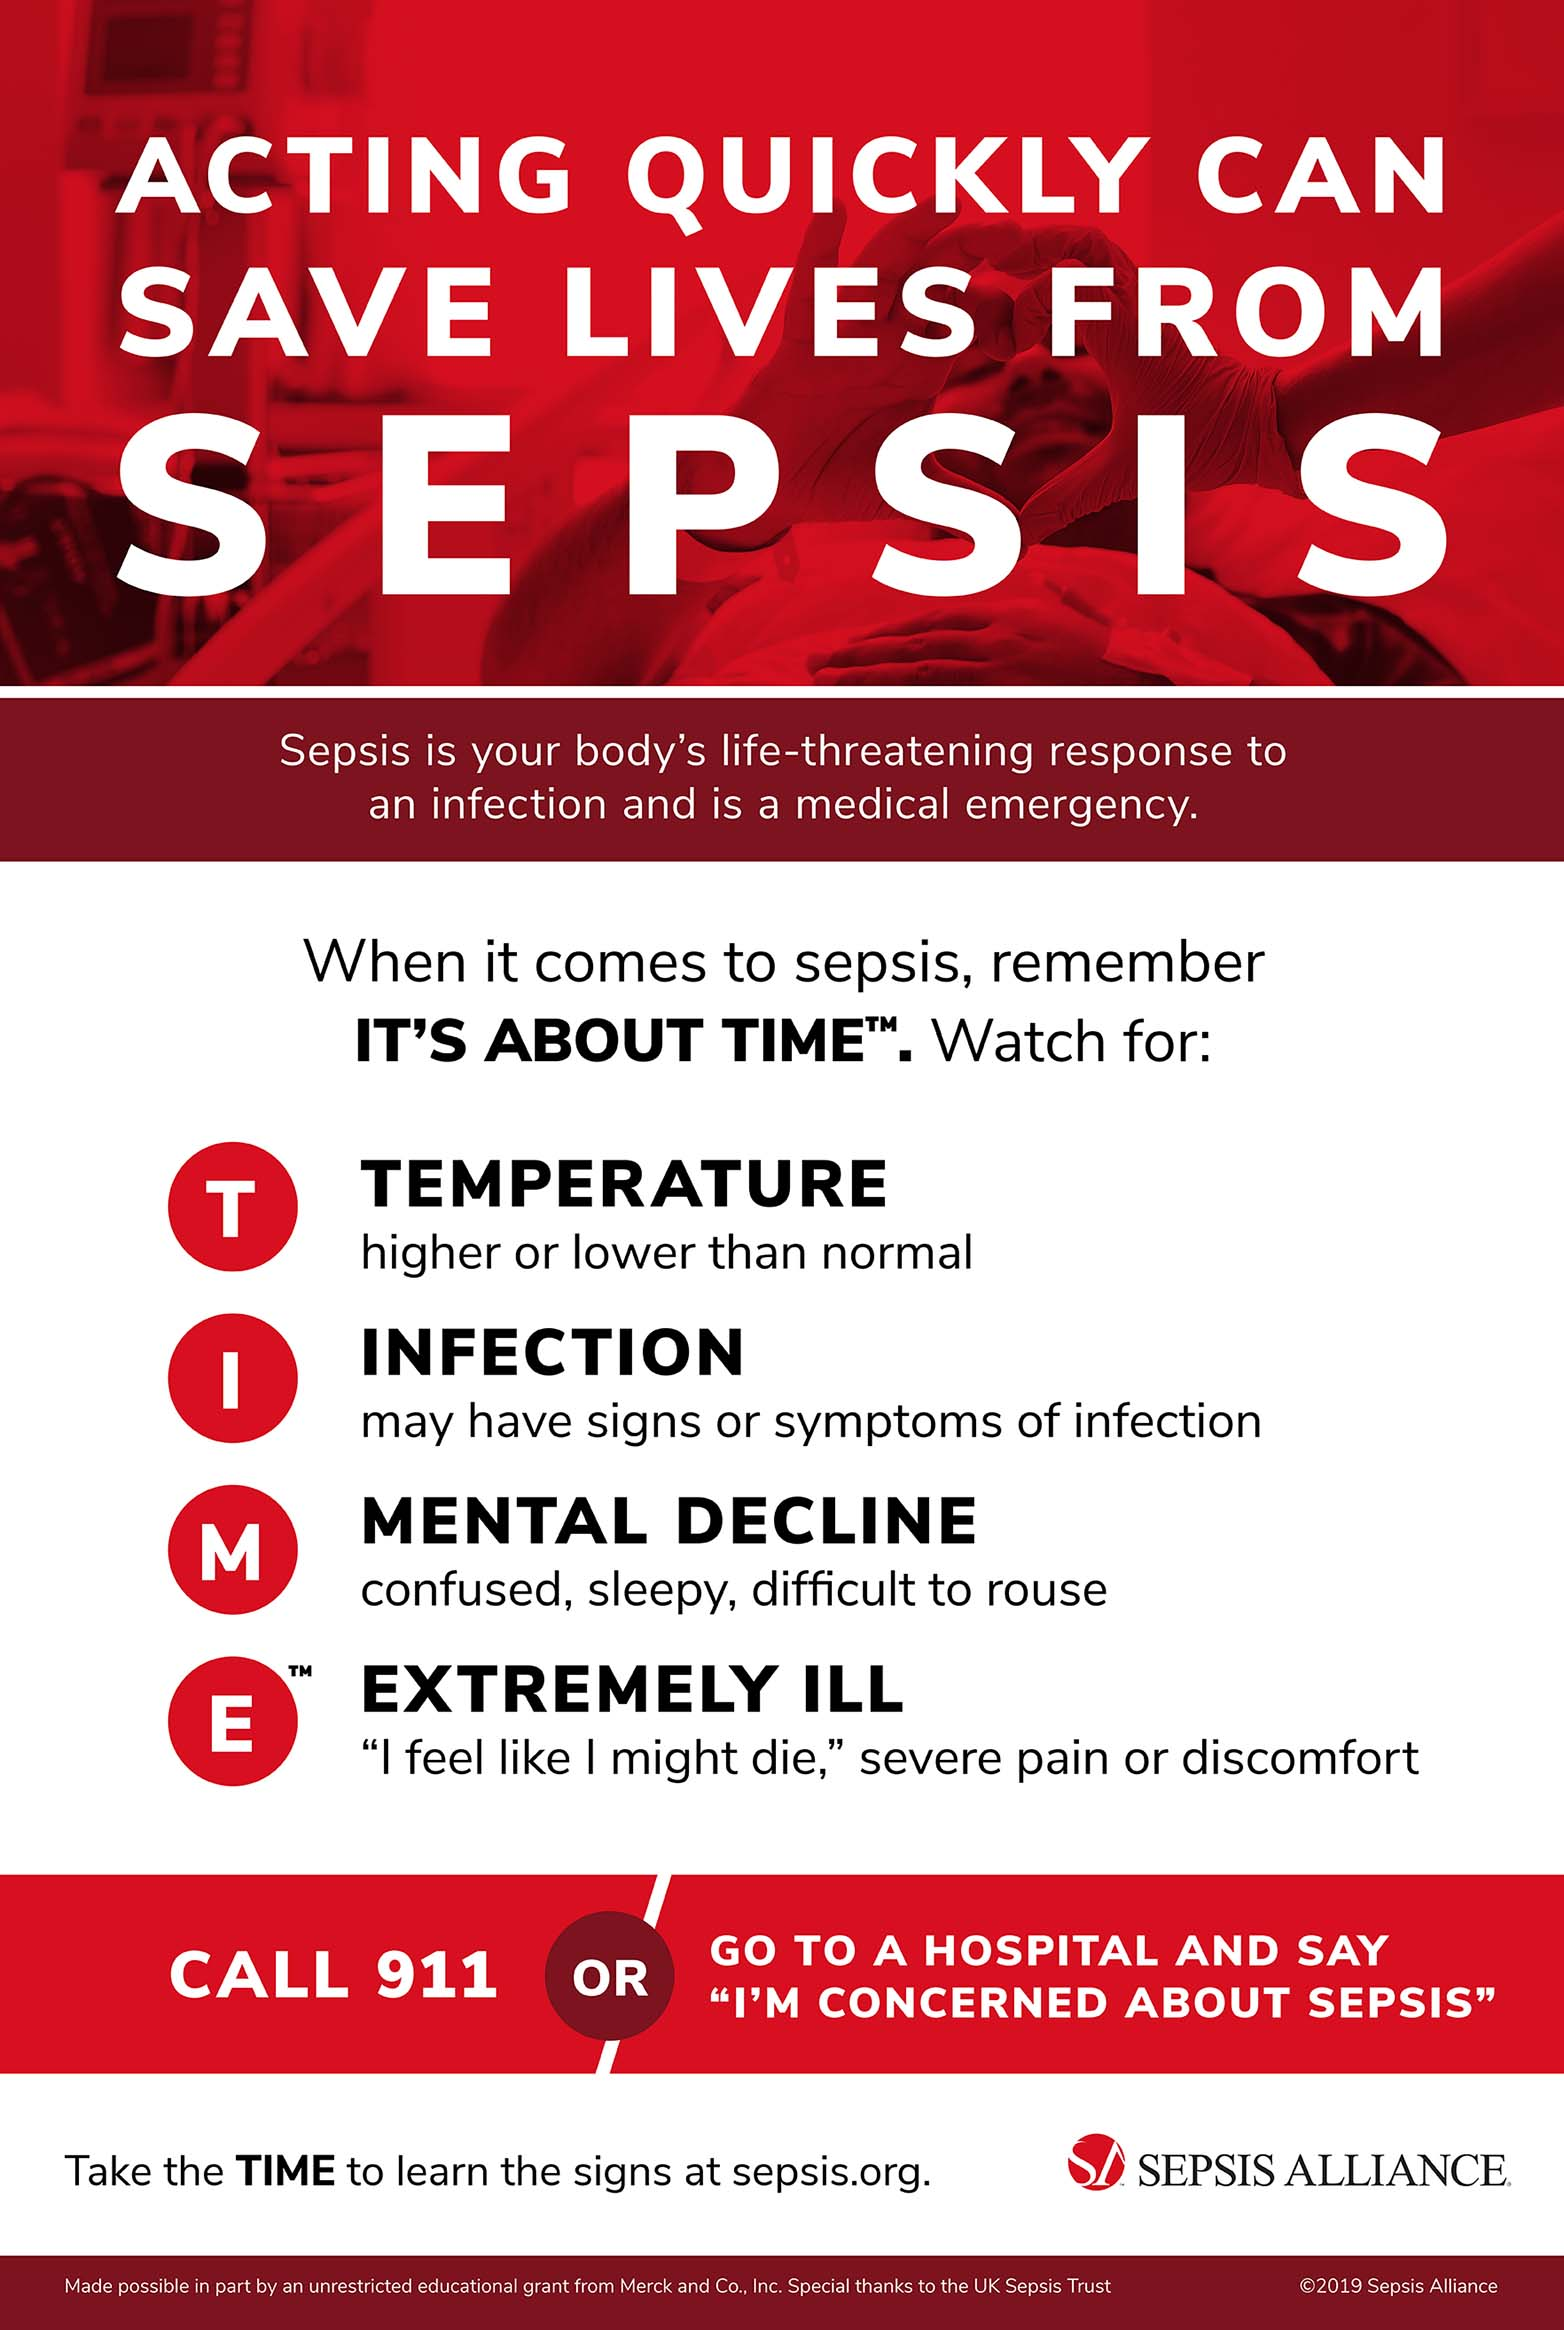 graphic showing steps to take if you suspect someone has Sepsis